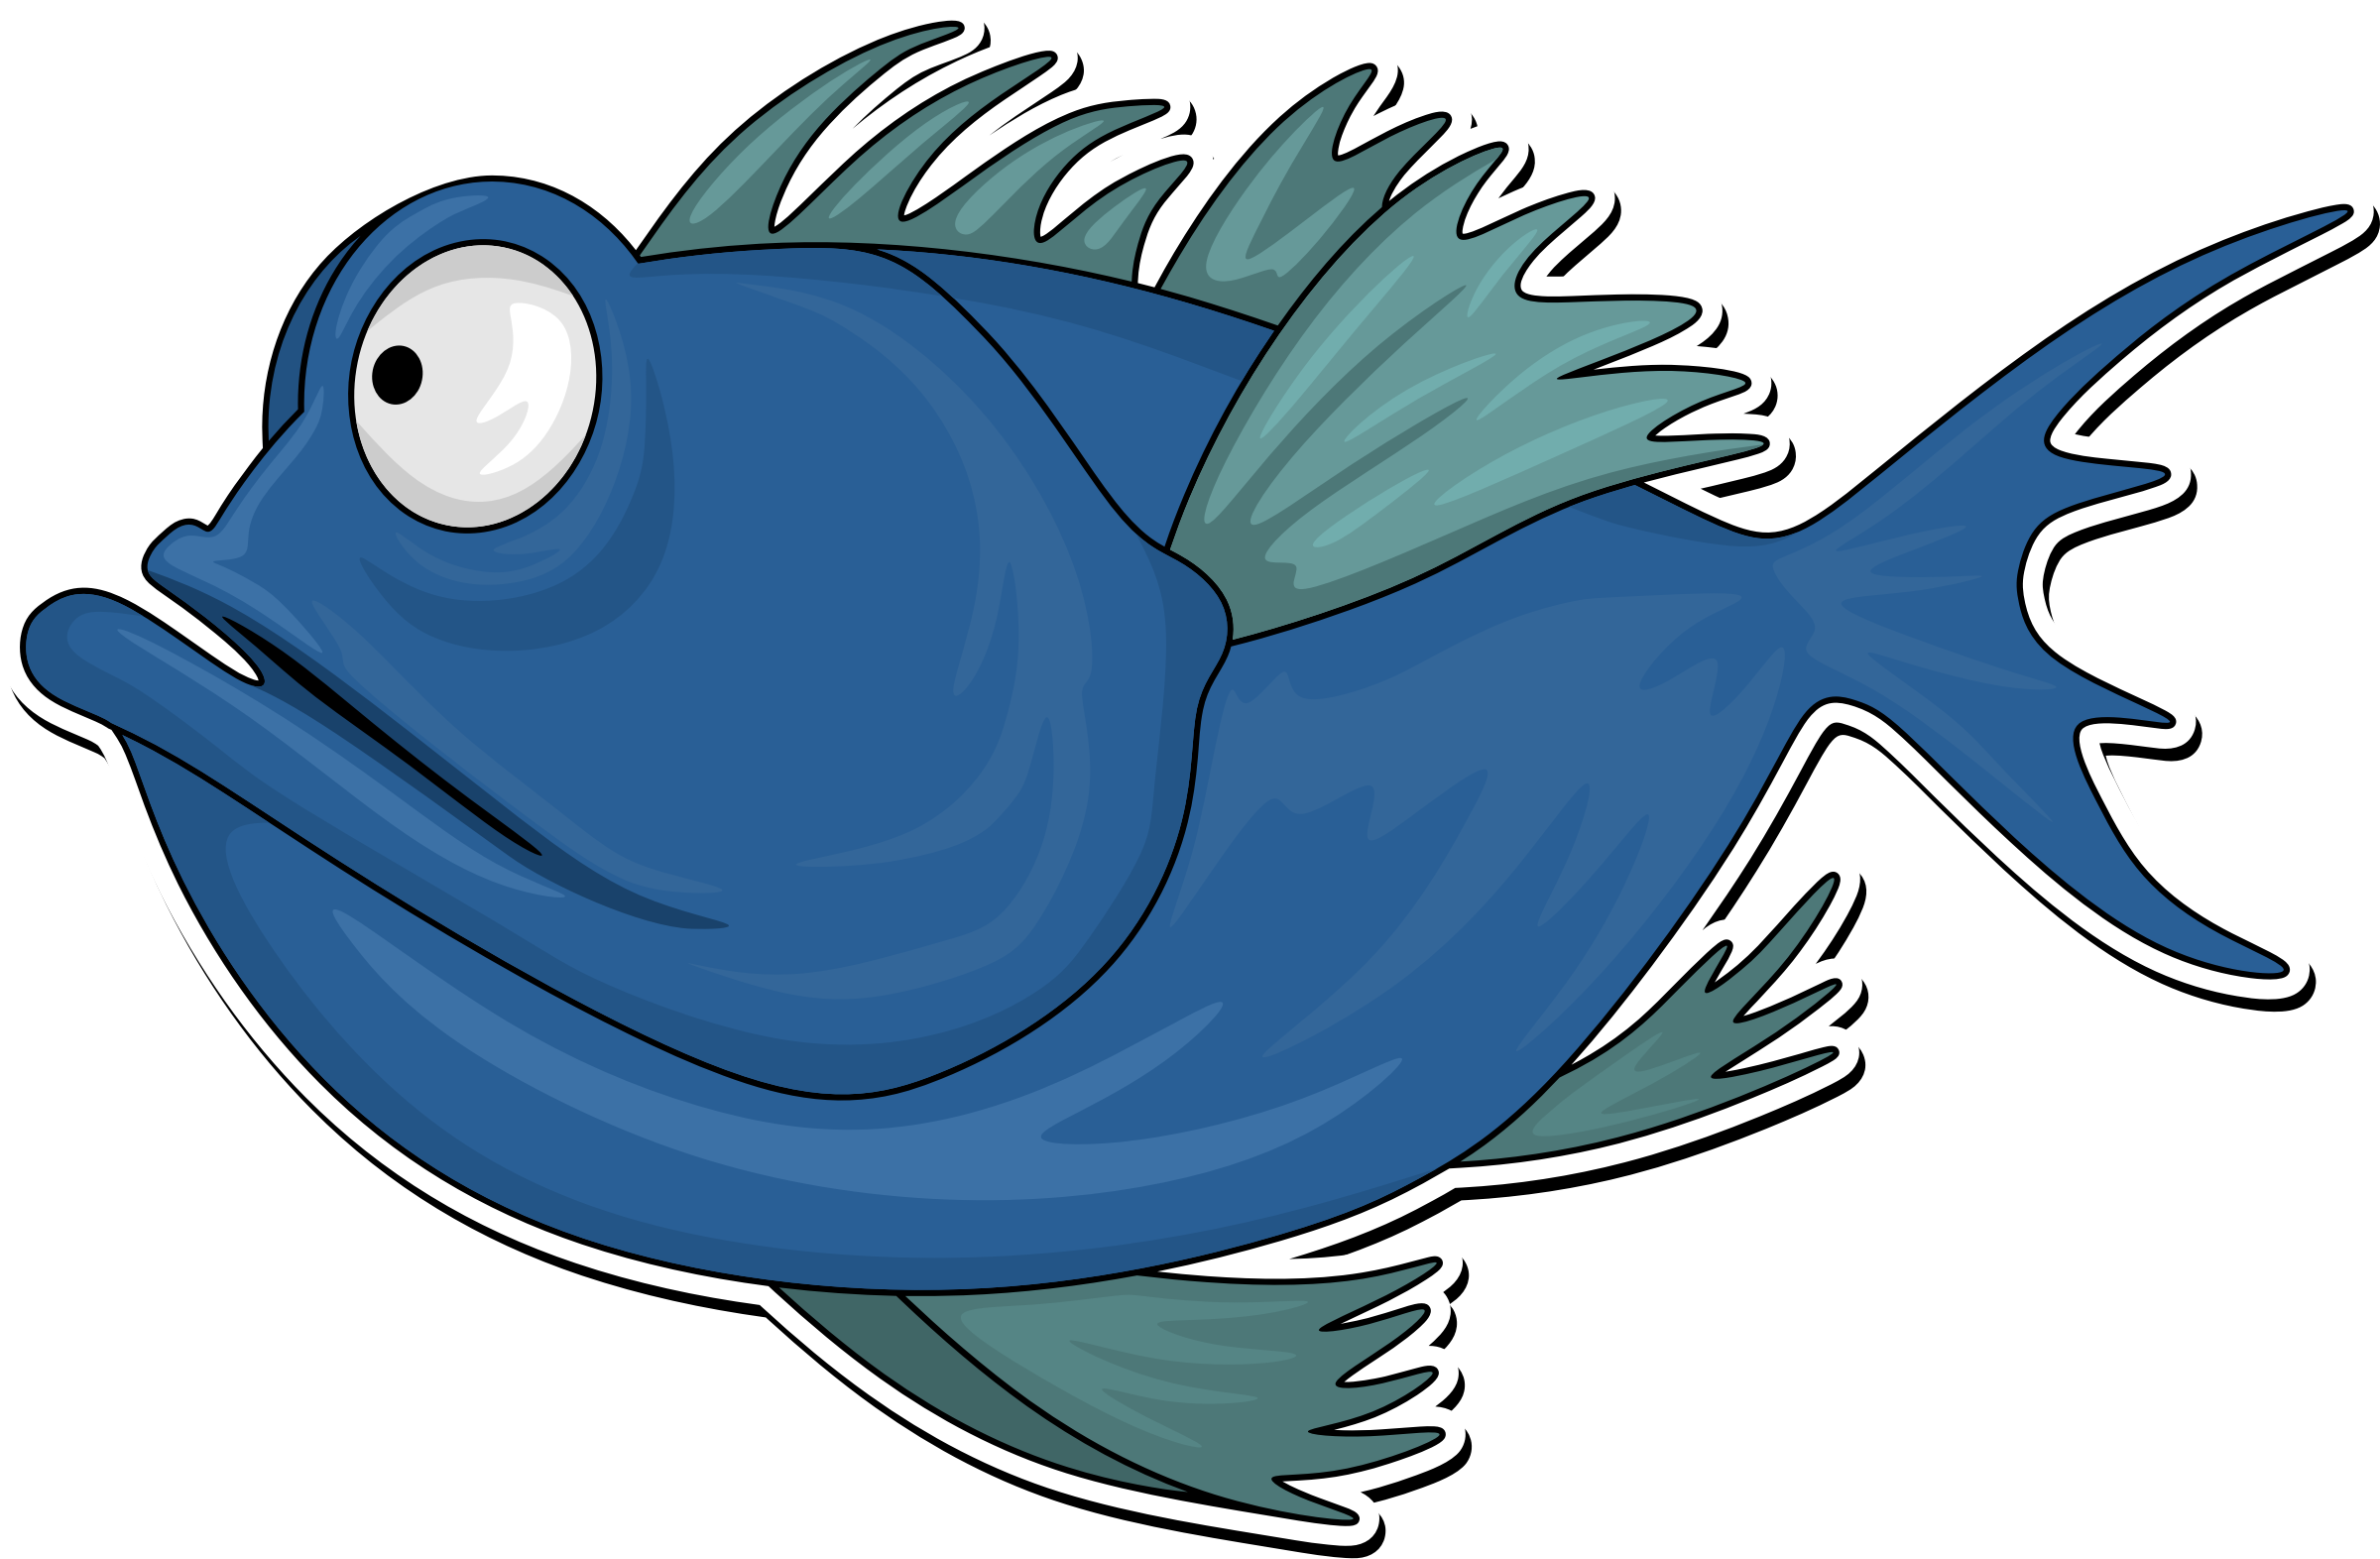 Trigger fish clipart jpg freeuse download Clipart - Cartoon fish 2 jpg freeuse download